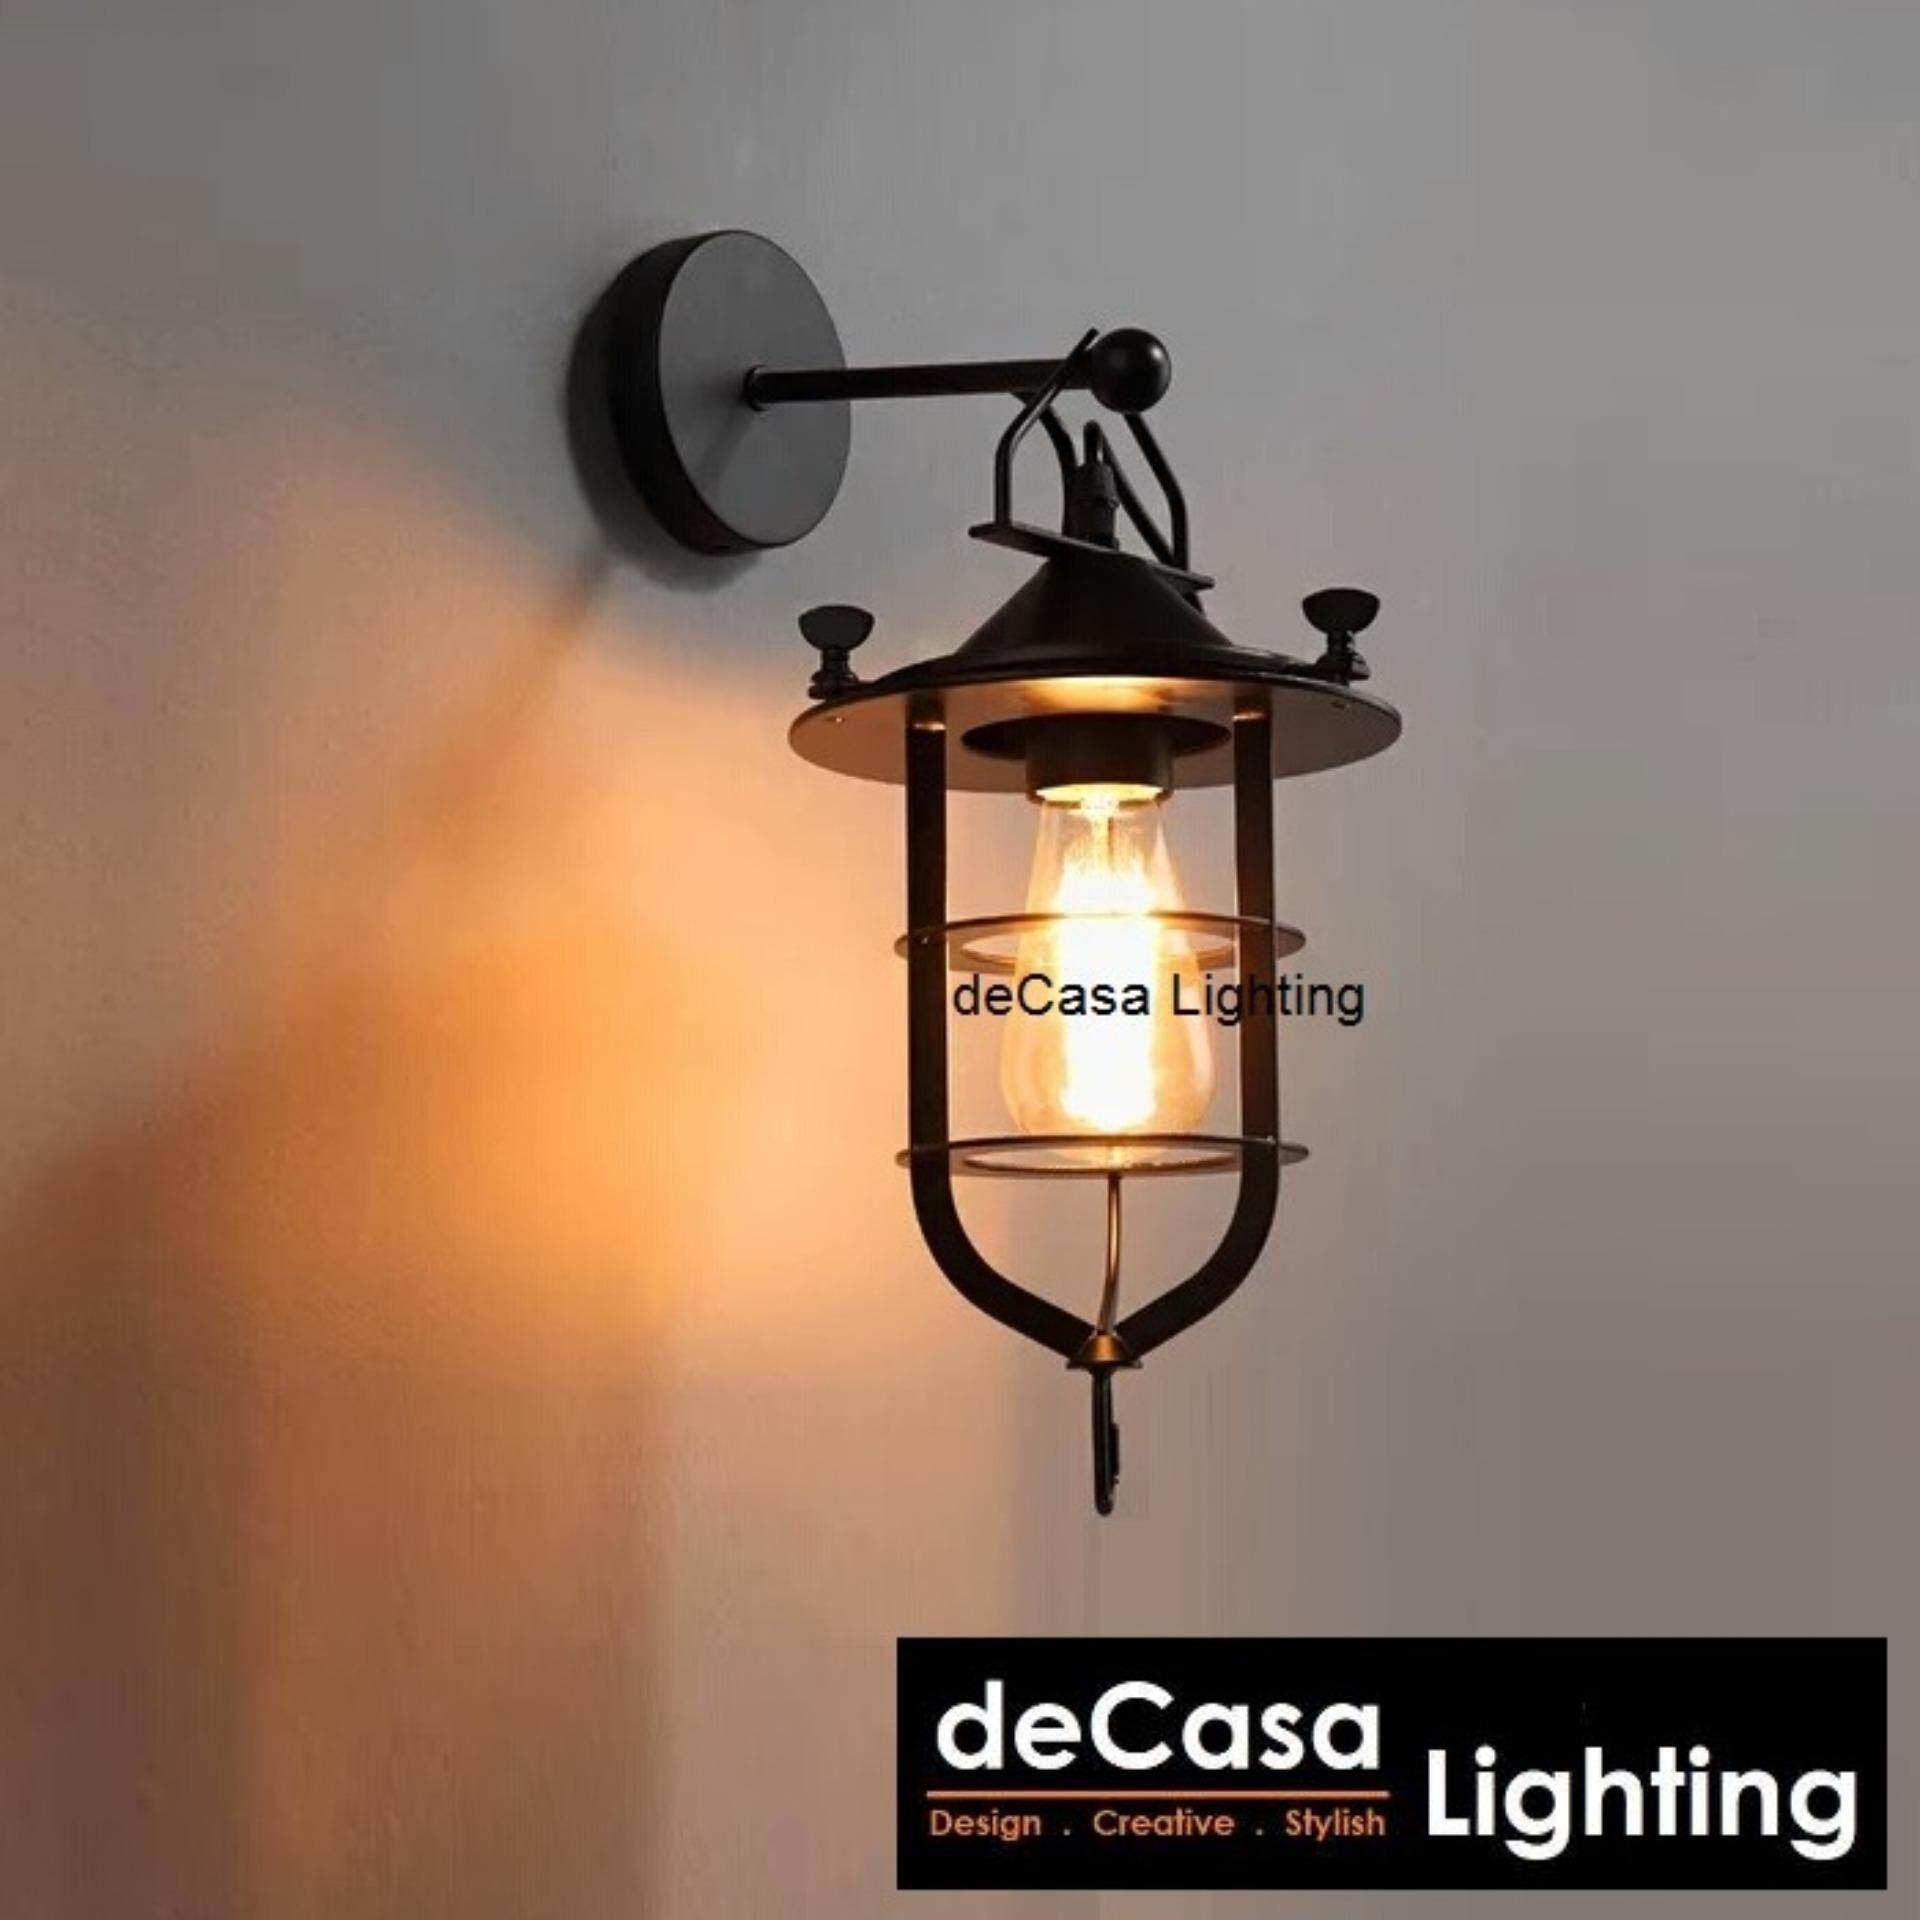 Decasa Lighting Best Seller Decorative Wall Lights (Black) Designer Wall Lights Loft Retro Design Decorative Wall Lamp DECASA WALL LIGHTING (LY-RQY-035)